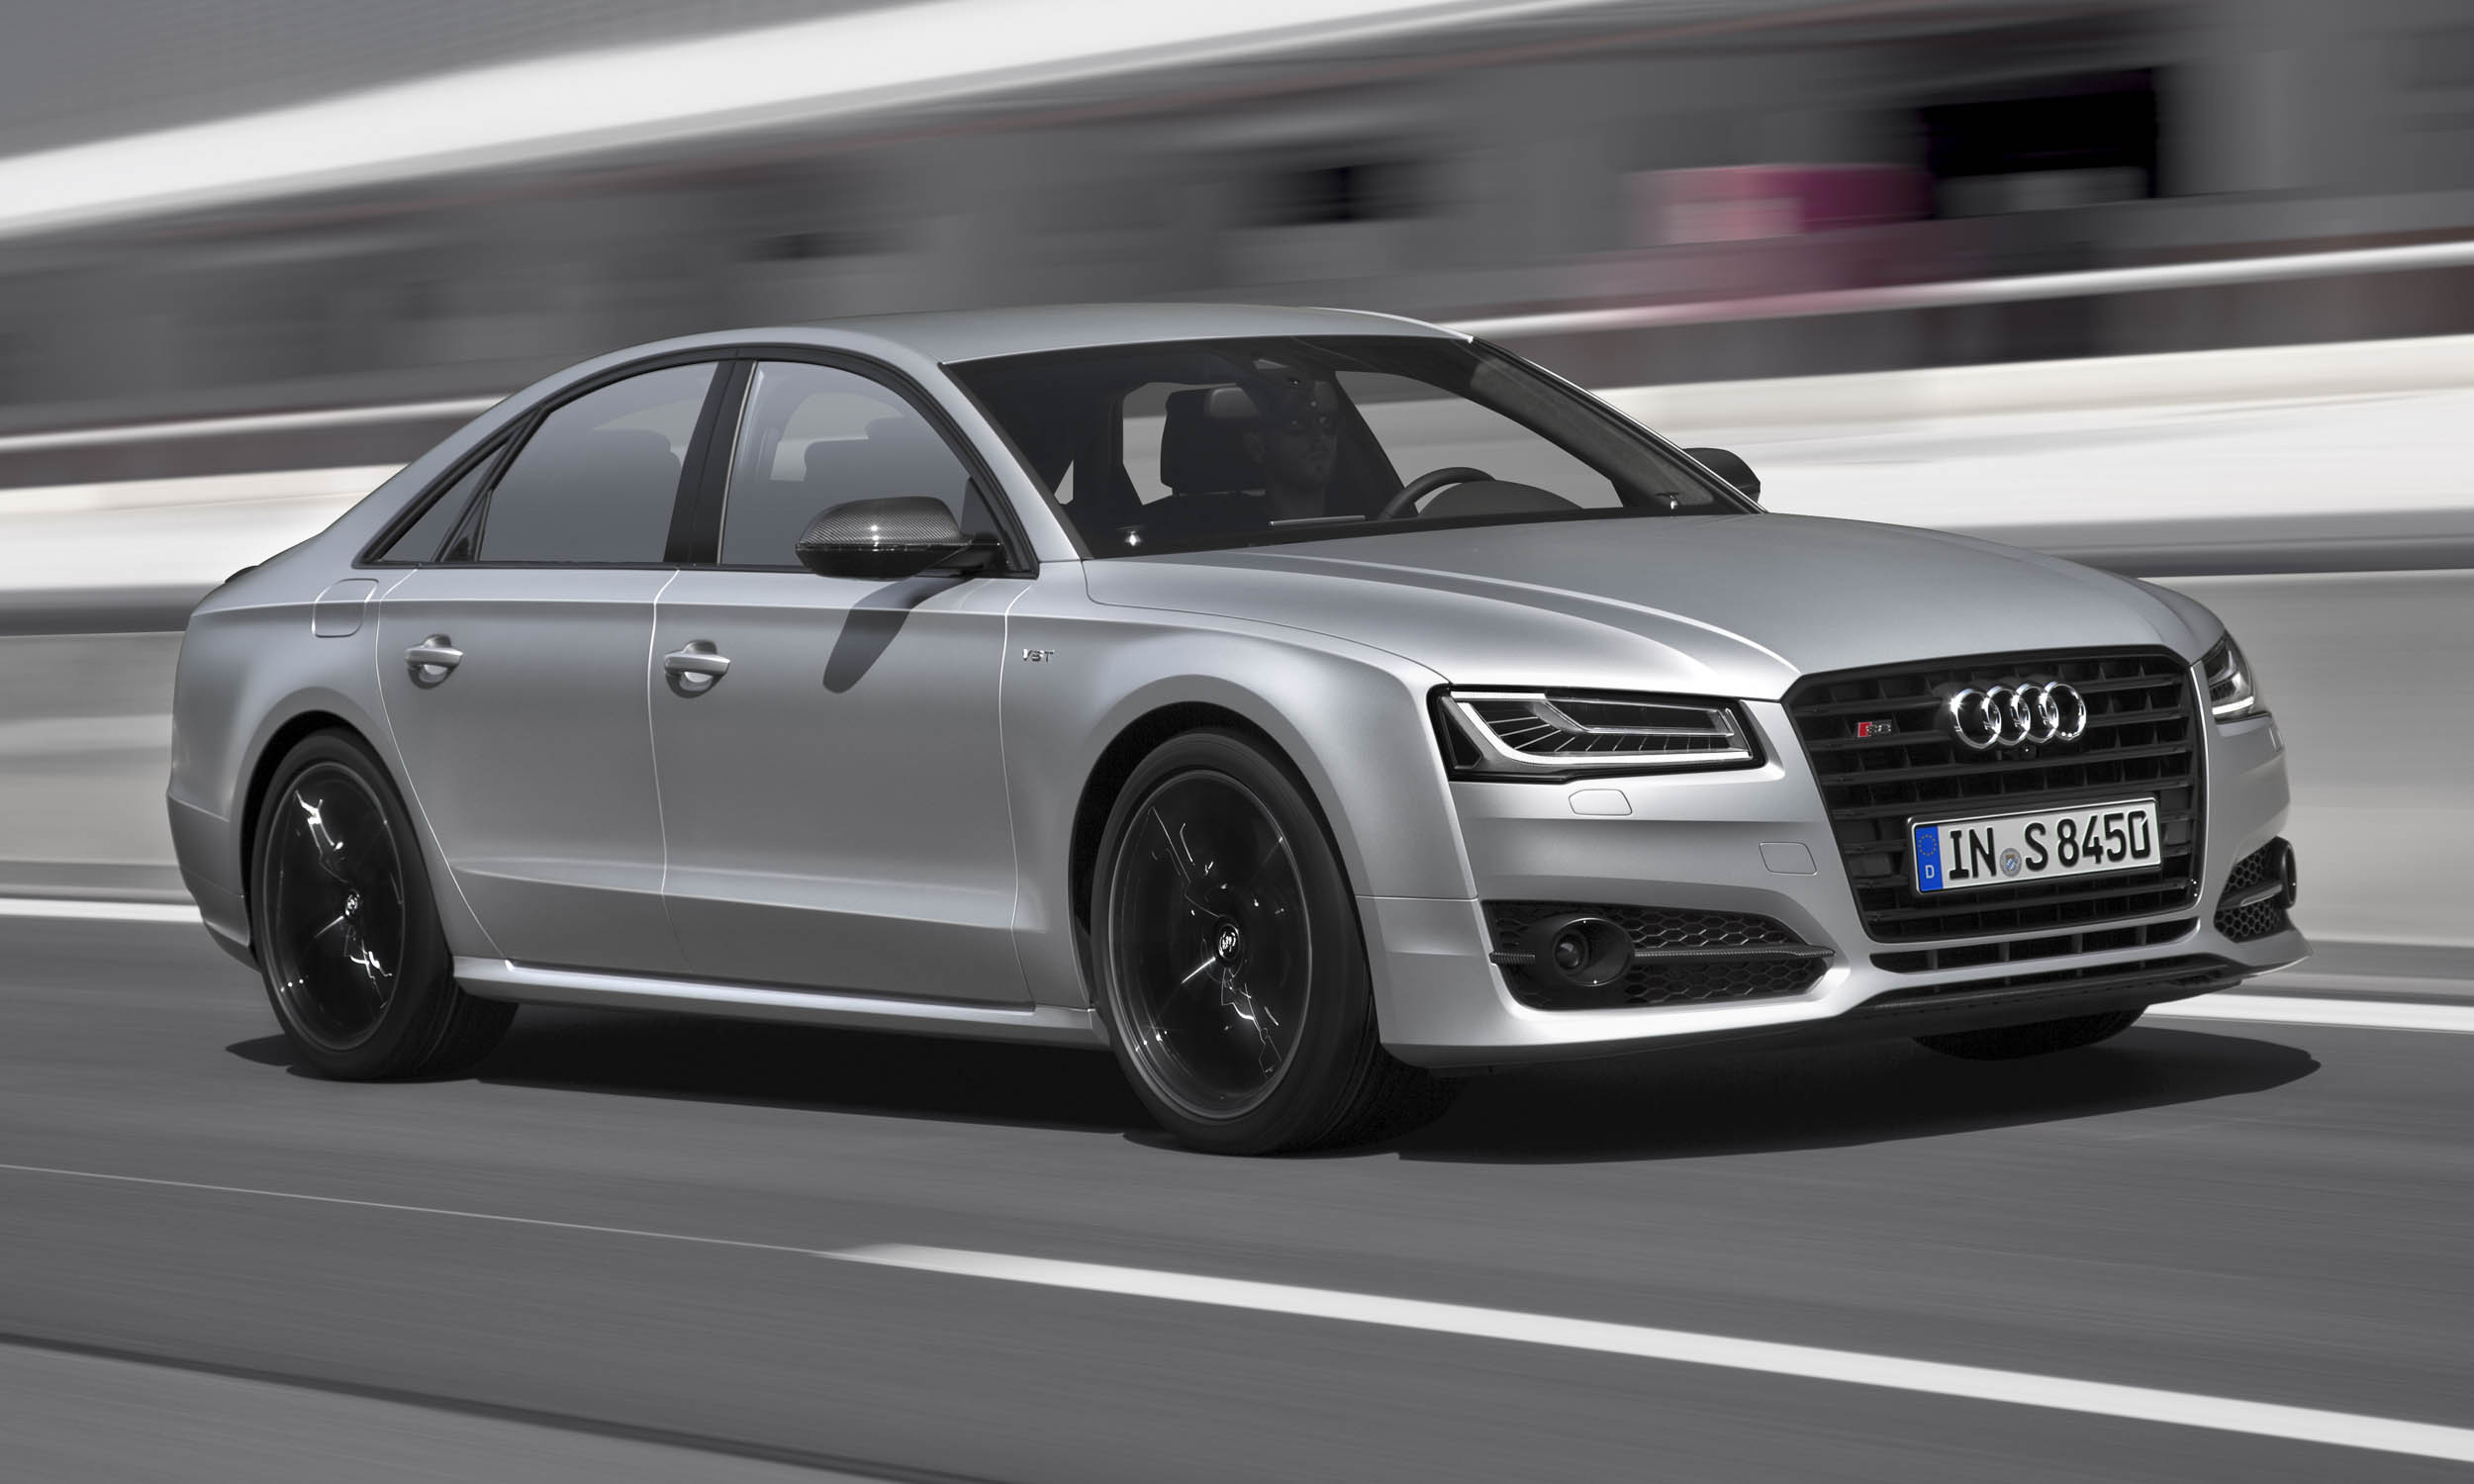 w12 engine of audi a8 produces 500 horsepower